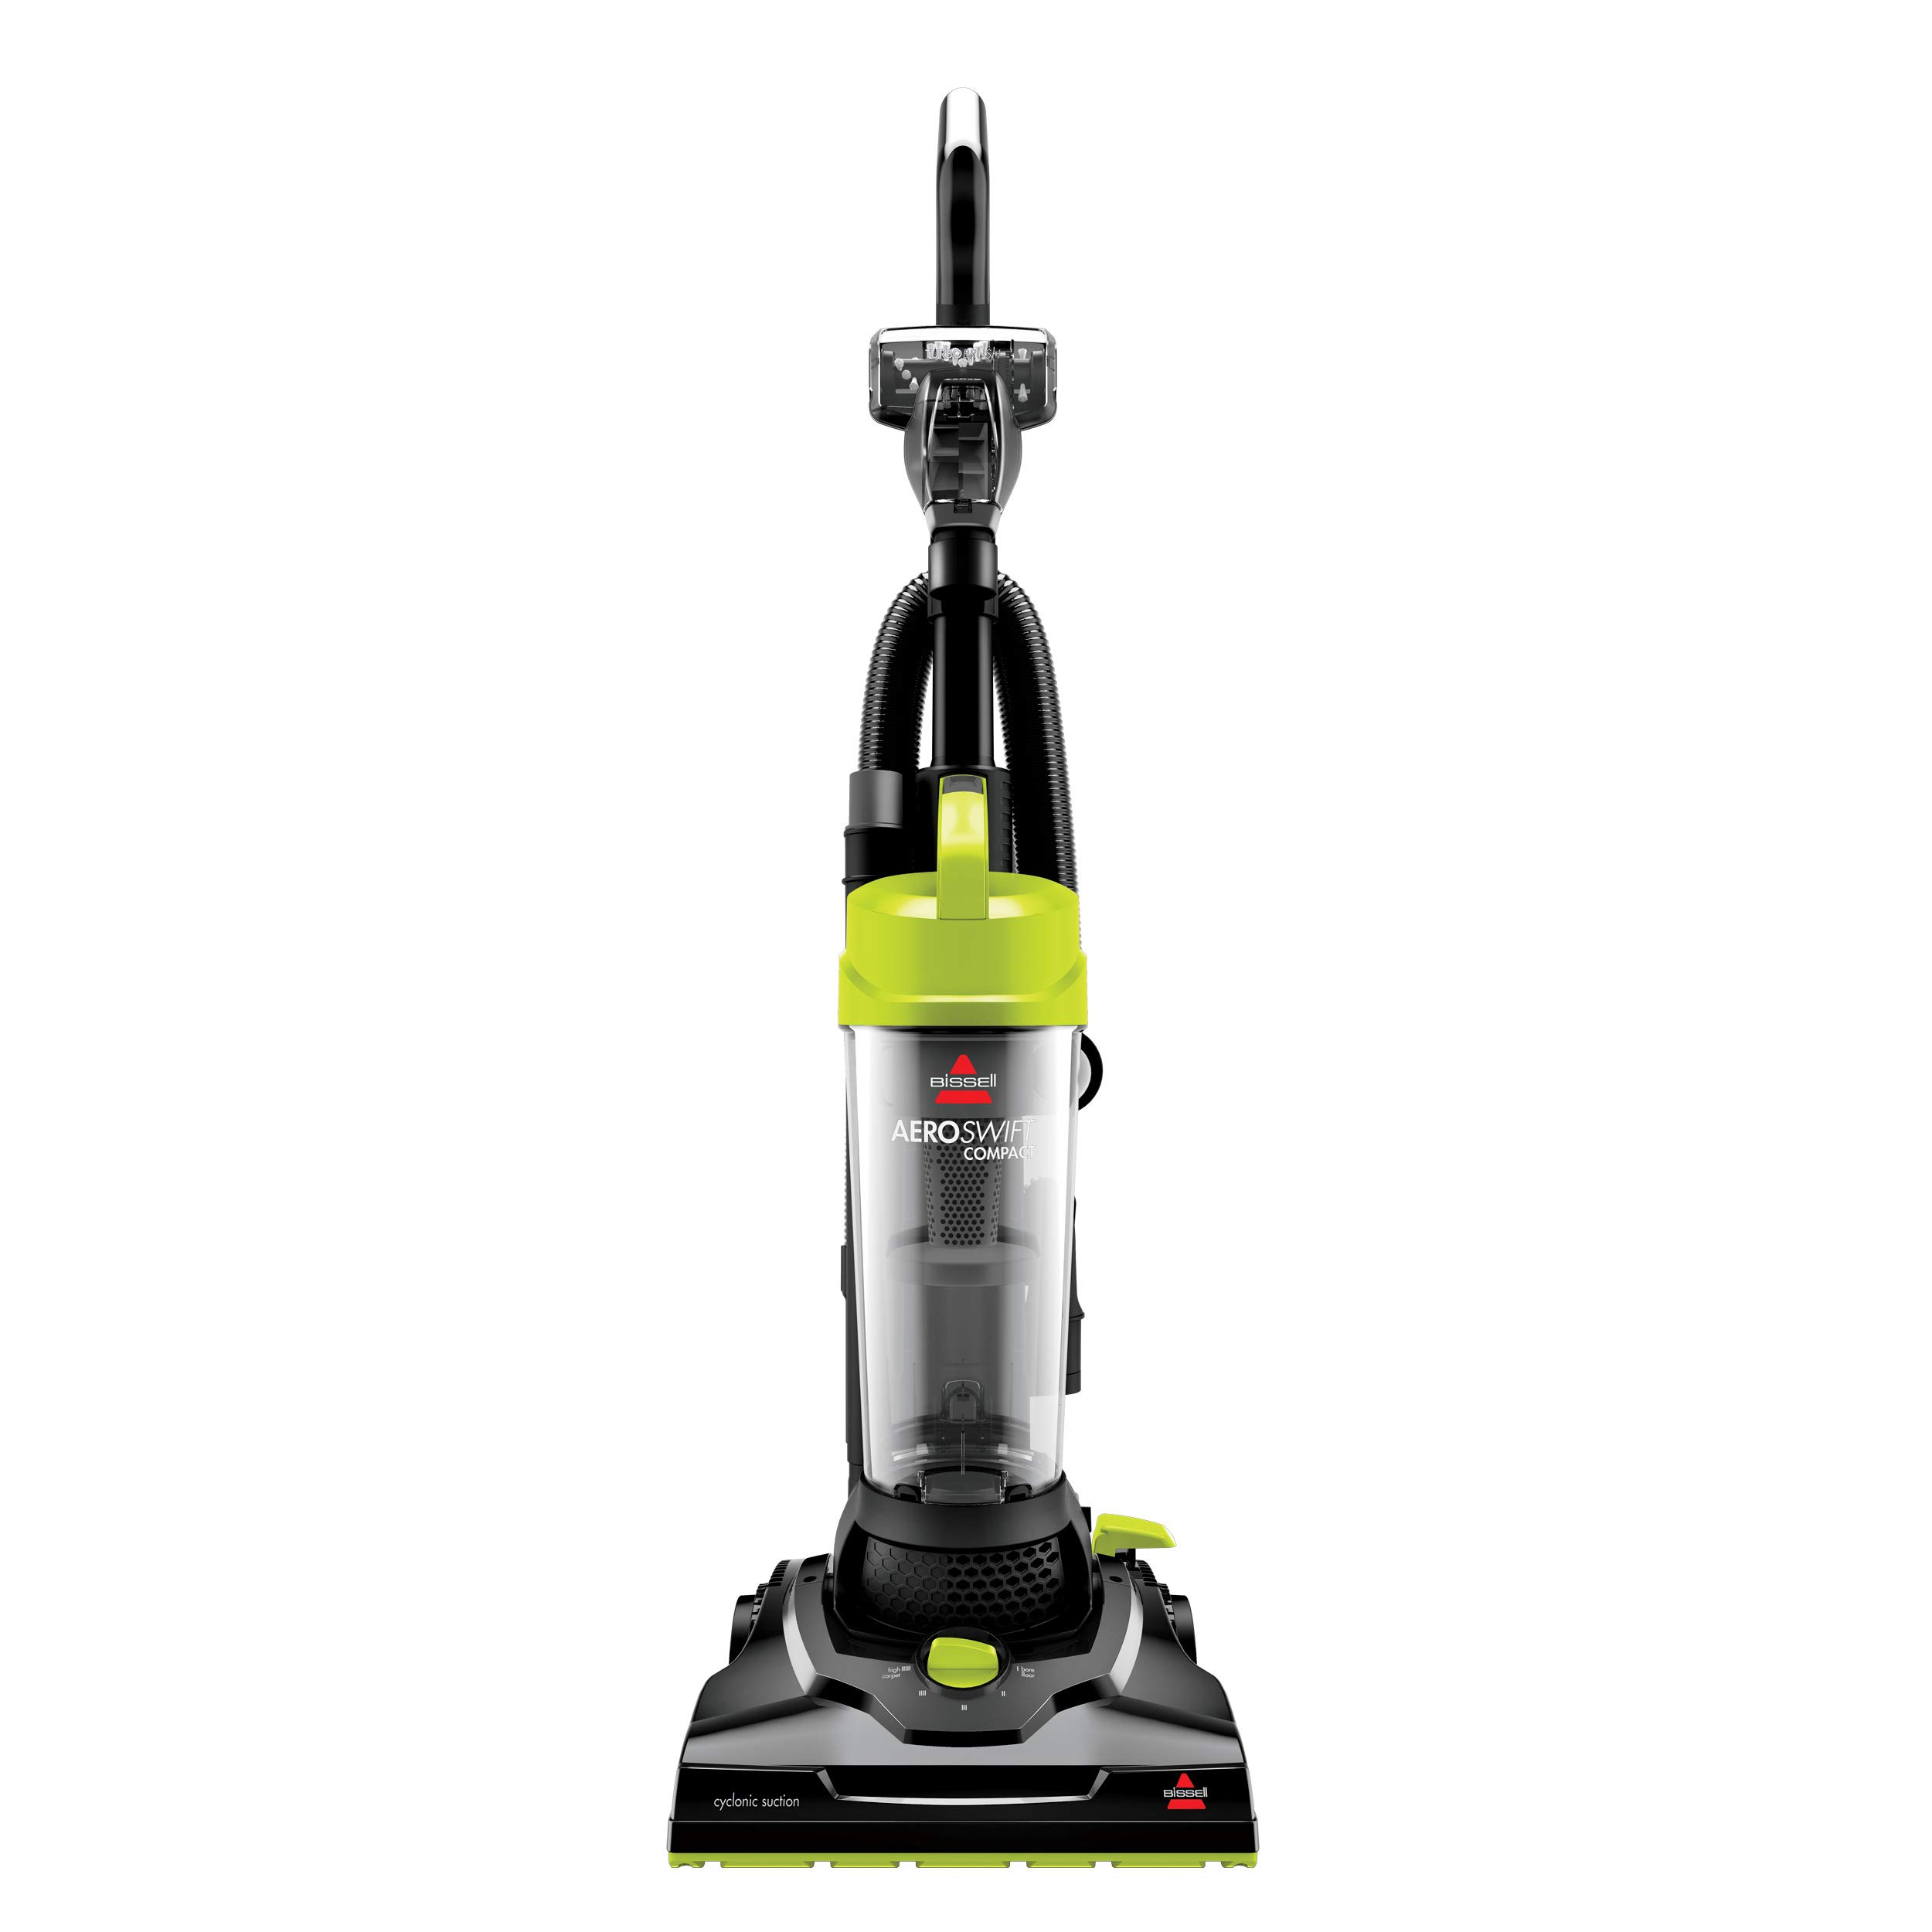 BISSELL Aeroswift Compact Vacuum Cleaner, 26124, Green by Bissell